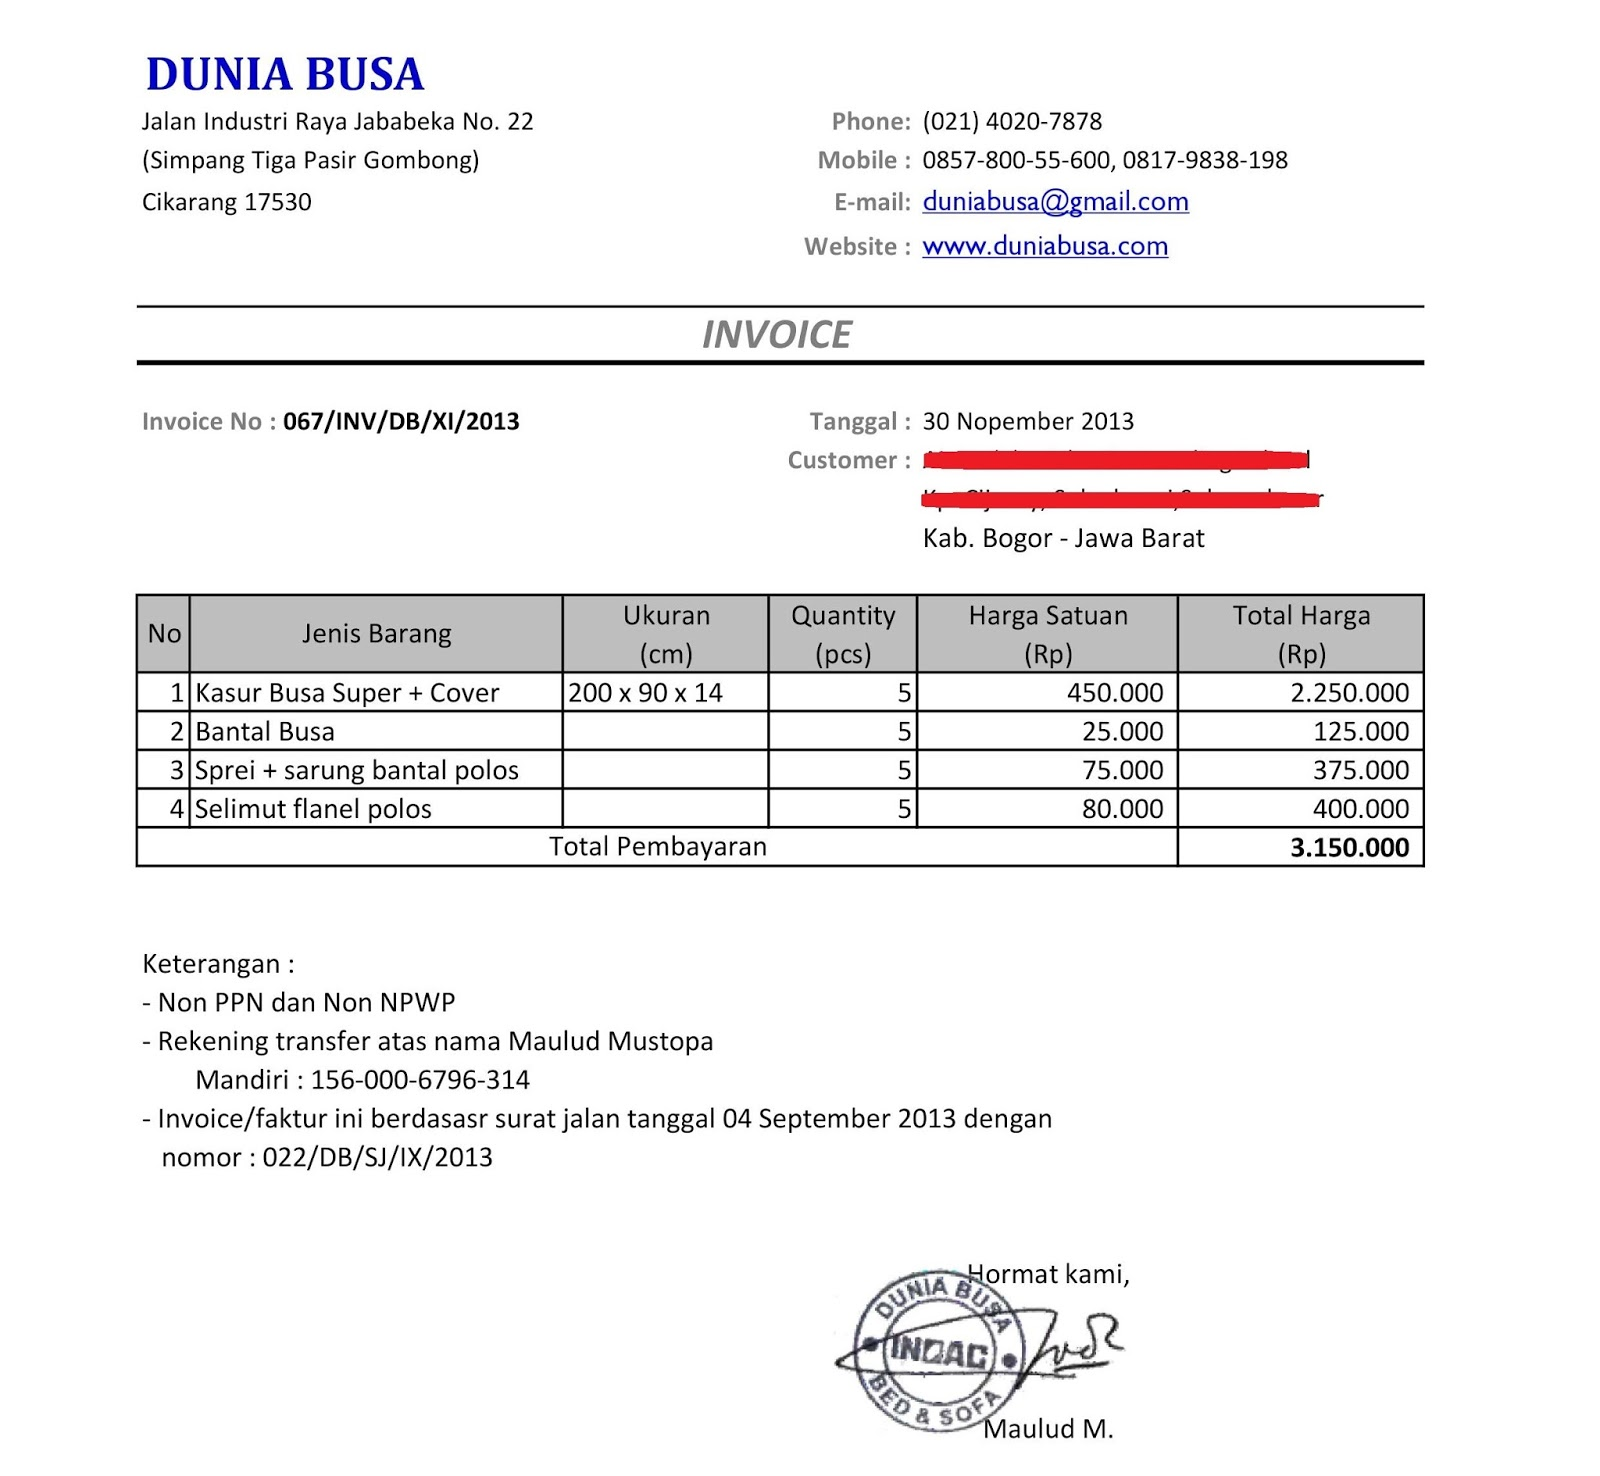 Usdgus  Unusual Free Invoice Online  Create Invoice Online  Invoice Template  With Gorgeous Contoh Format Invoice Atau Surat Tagihan  Brankas Arsip  Free Invoice Online With Divine Amazon Invoice Also Invoice Define In Addition Consulting Invoice Template And What Does An Invoice Look Like As Well As Paypal Invoicing Additionally Sample Invoice Pdf From Sklepco With Usdgus  Gorgeous Free Invoice Online  Create Invoice Online  Invoice Template  With Divine Contoh Format Invoice Atau Surat Tagihan  Brankas Arsip  Free Invoice Online And Unusual Amazon Invoice Also Invoice Define In Addition Consulting Invoice Template From Sklepco